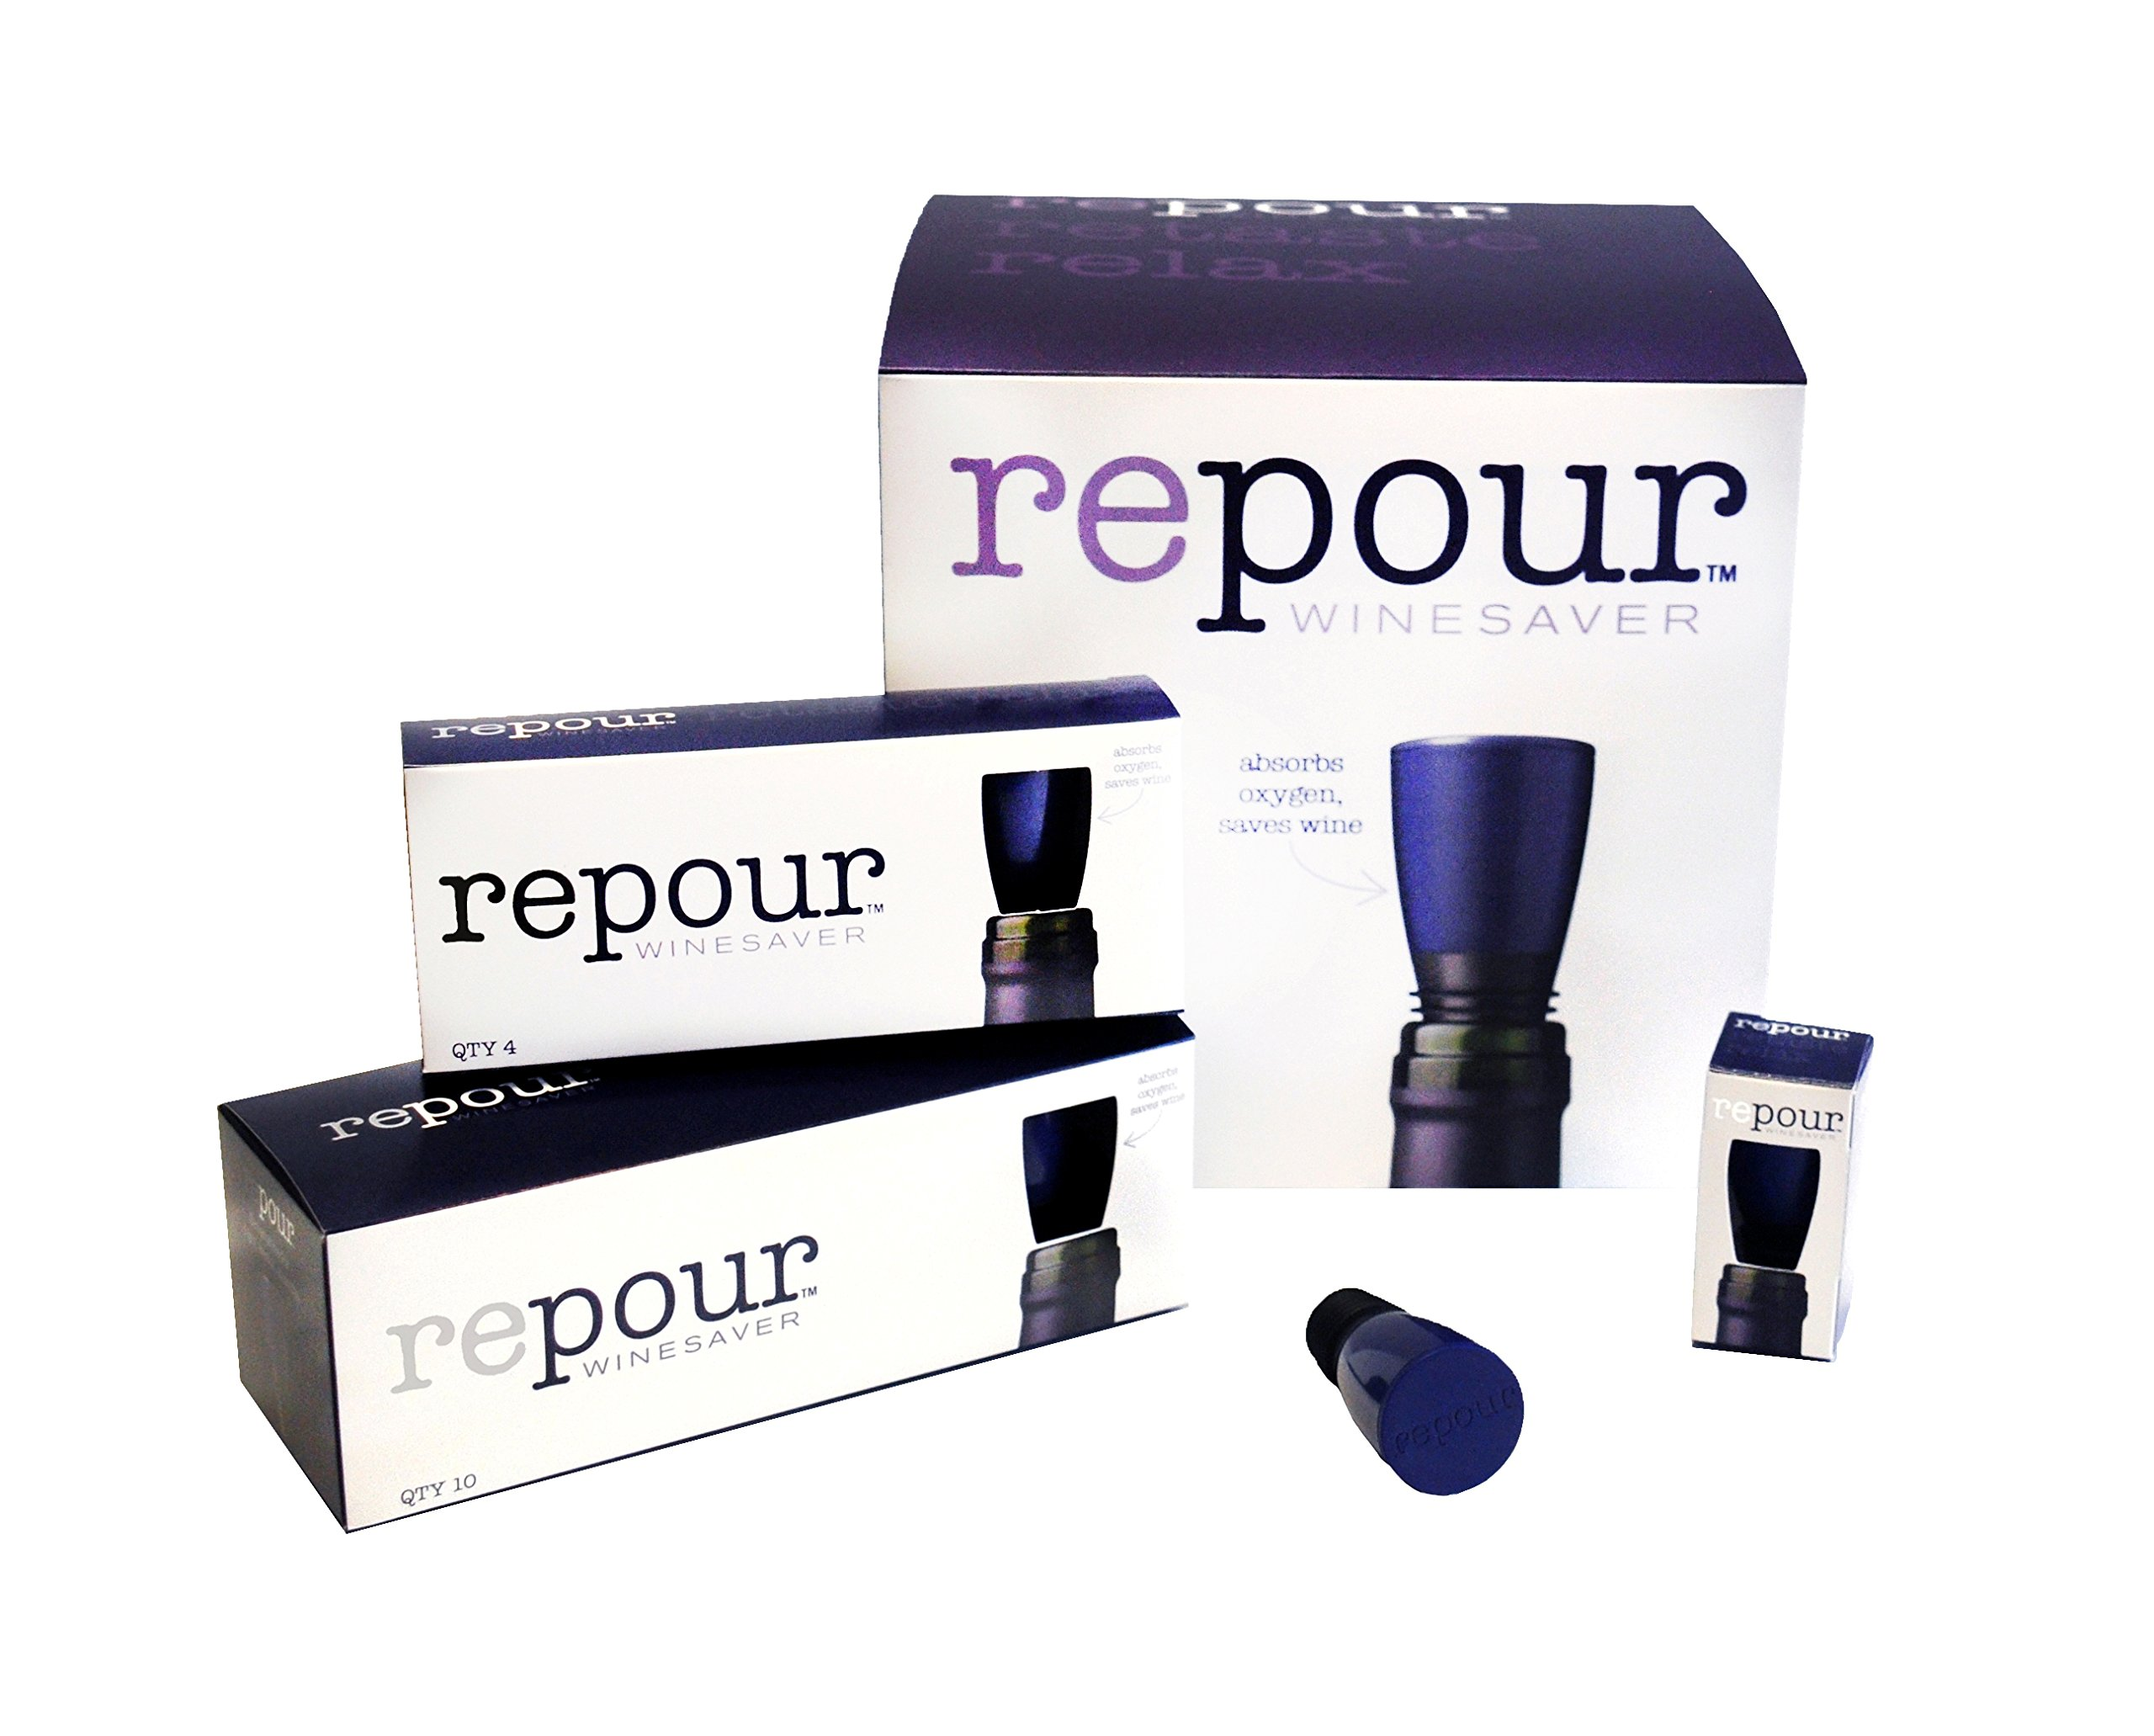 Repour Wine Saver - Wine Preserver and Stopper, Removes harmful oxygen from your wine, simply and effectively,Indigo Blue,10 Pack